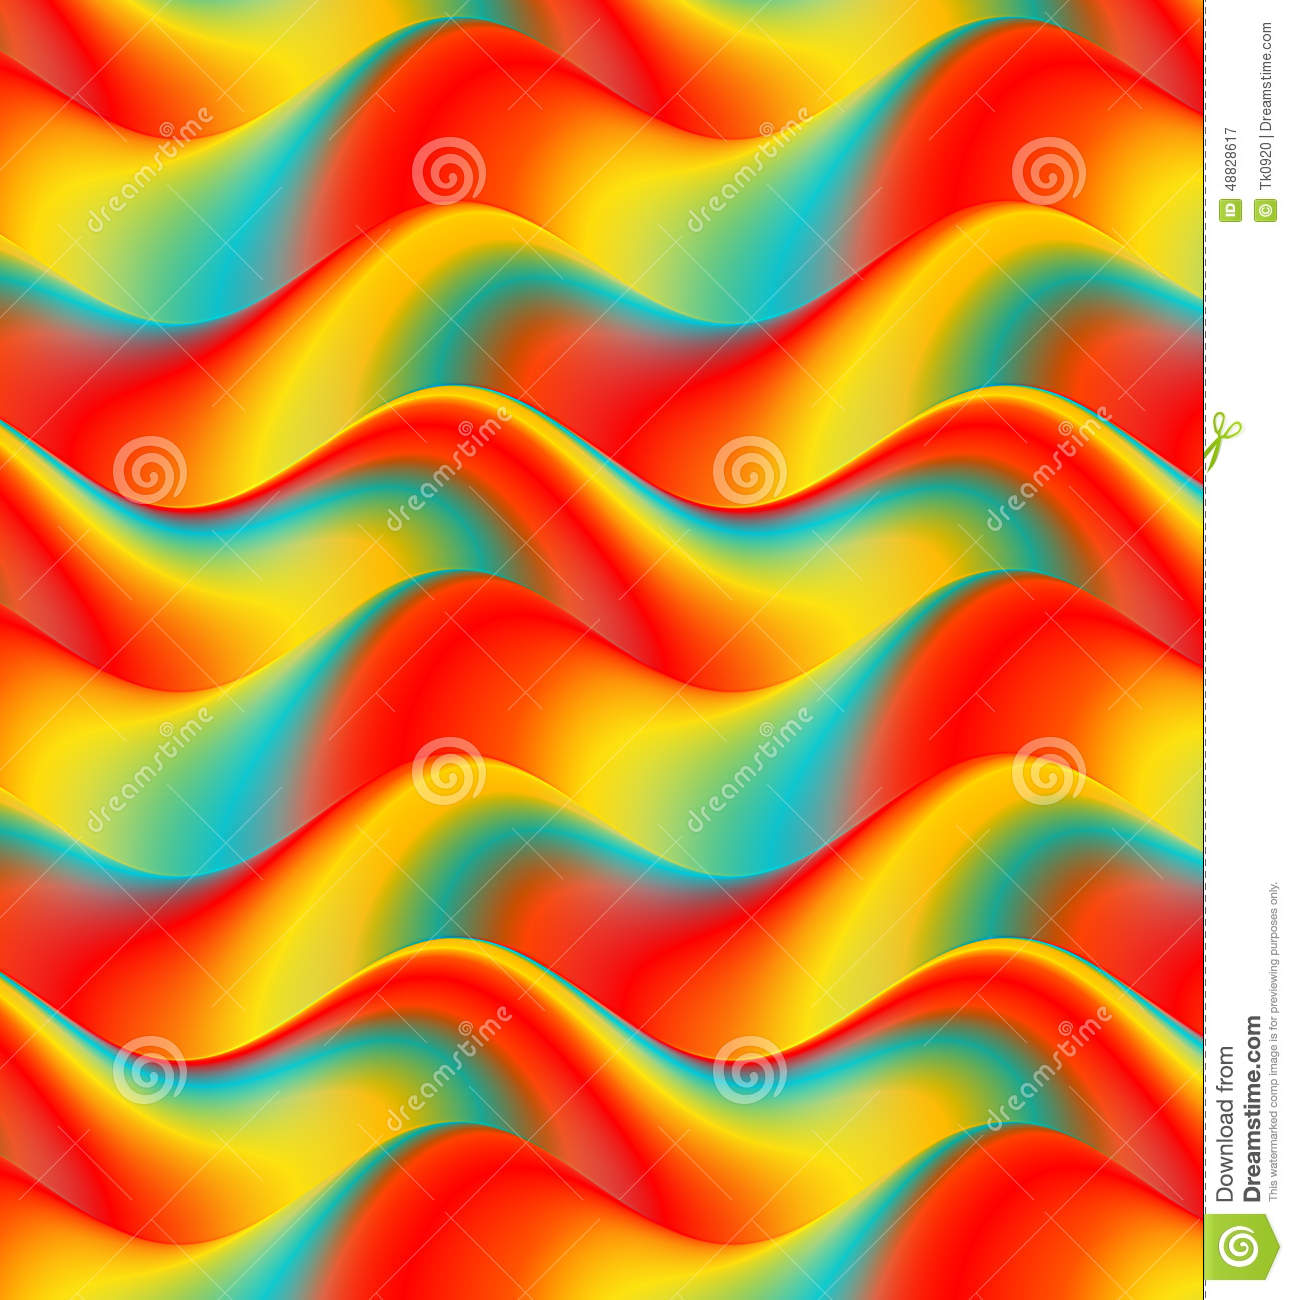 Colorful Waves Background, Abstract Wallpaper Stock